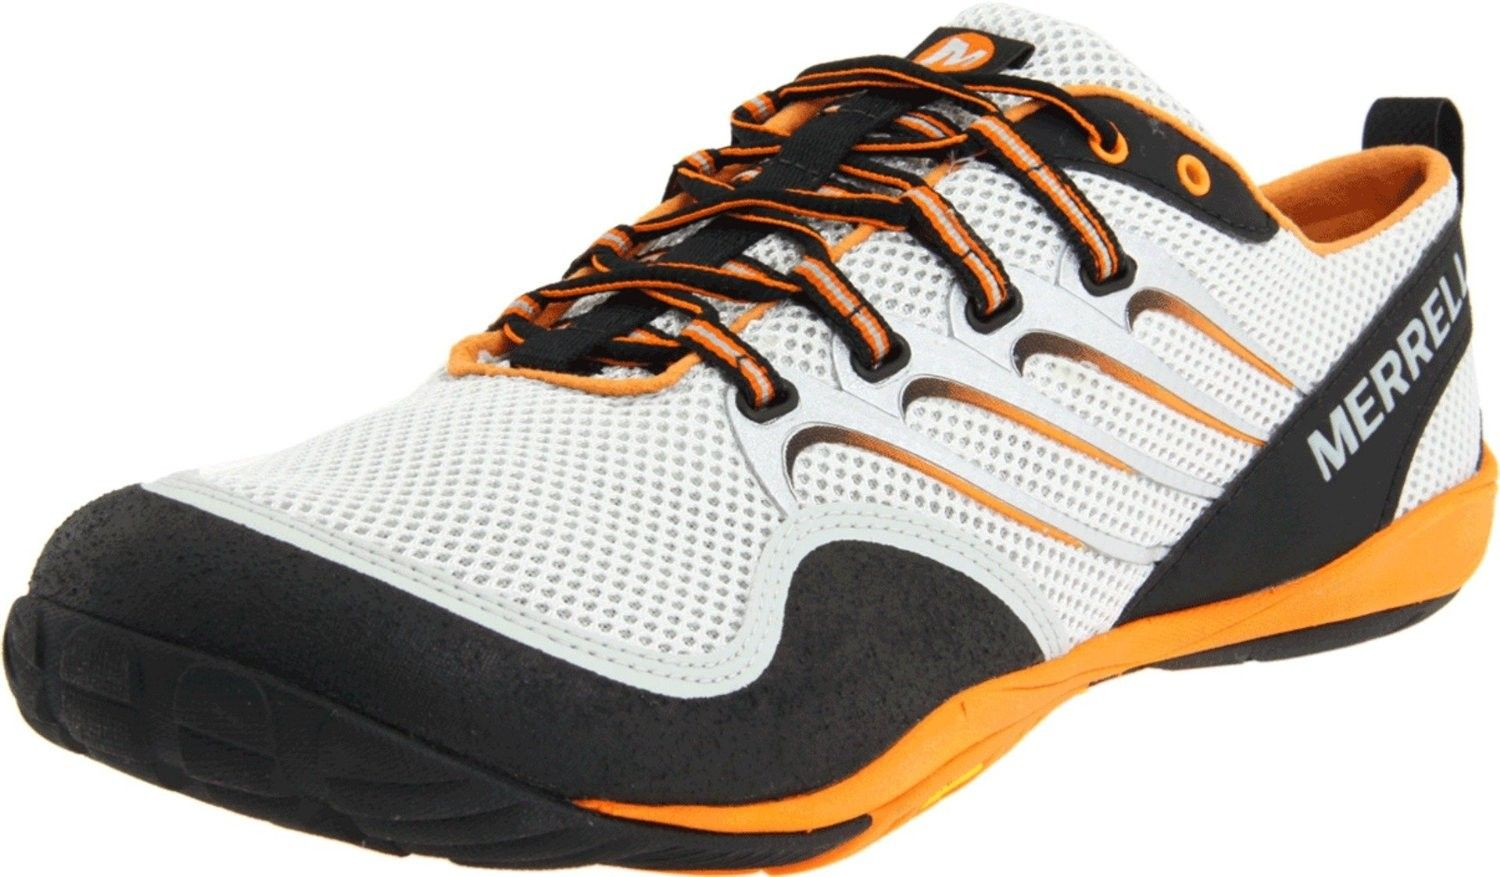 Top 10 Best Minimalist Running Shoes in 2015 - Best Running Shoes ... 07449425f